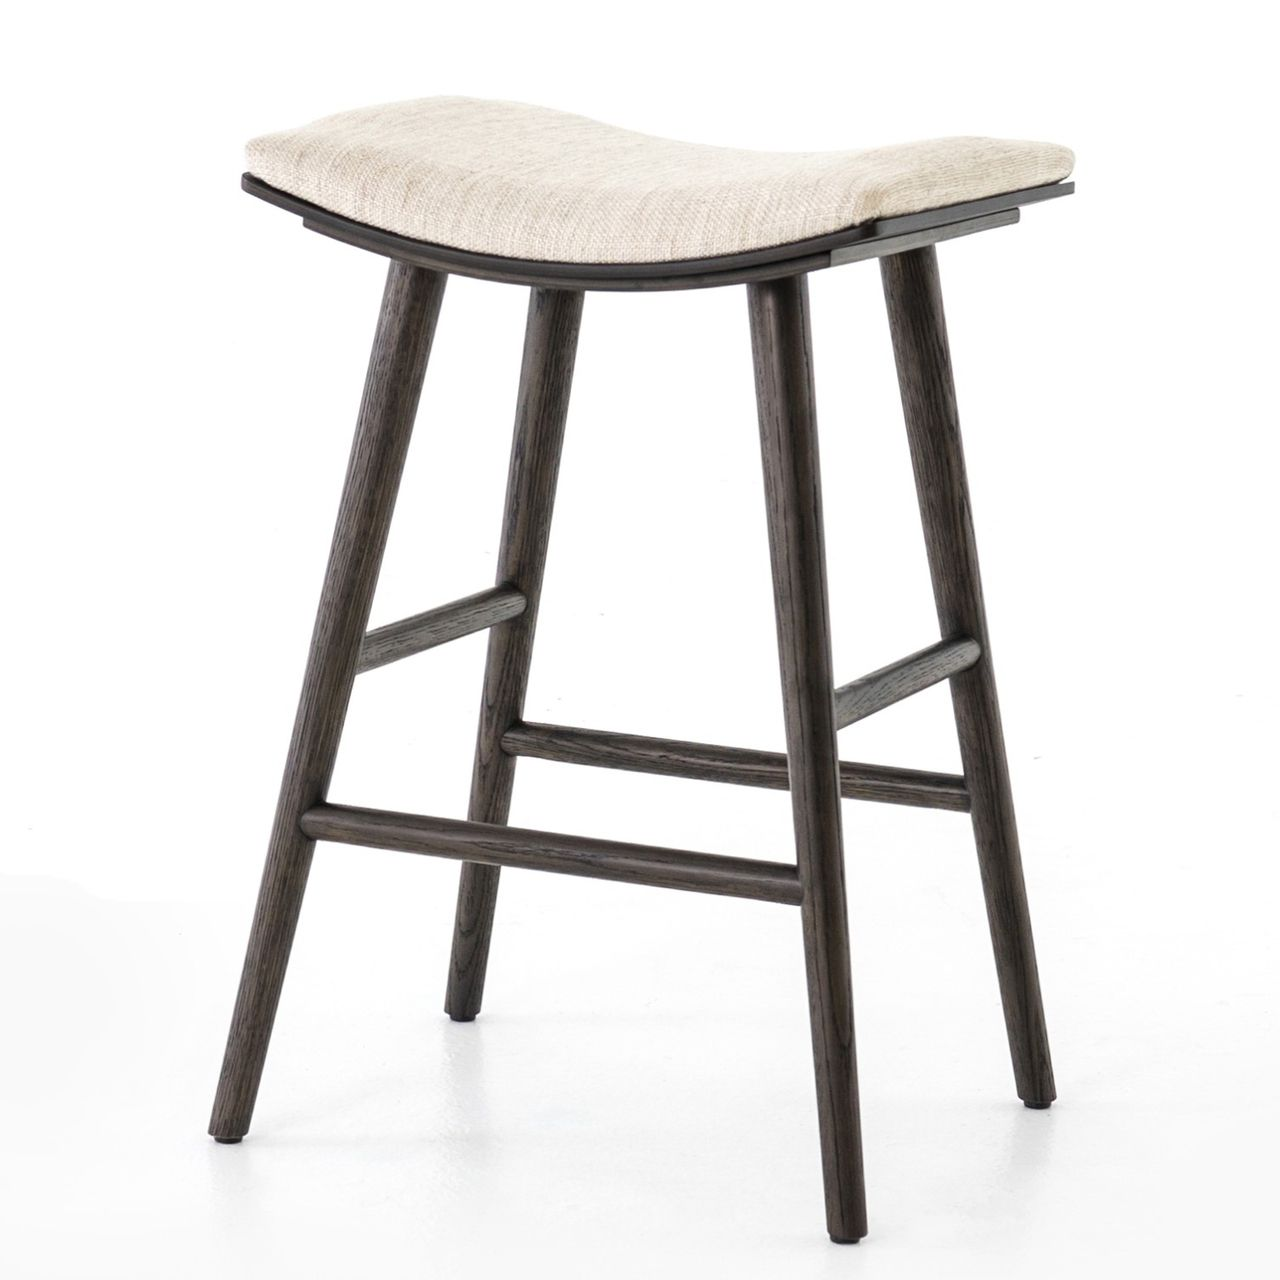 Saddle Mid Century Oak Counter Stool Counter Stools Cozy Seats Black Dining Room Chairs